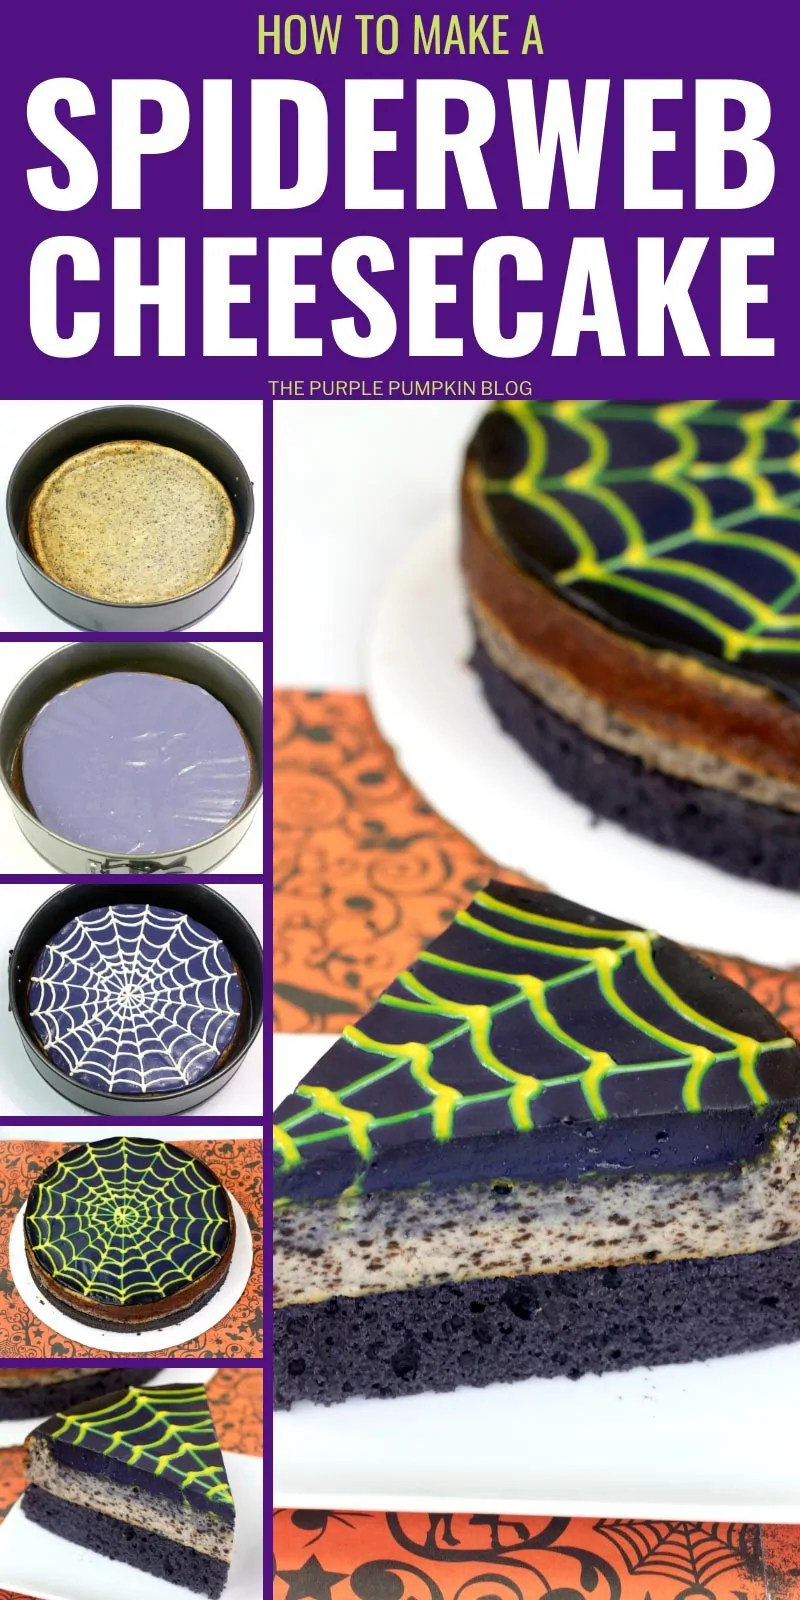 How to make a Spiderweb Cheesecake - with step by step images showing how.